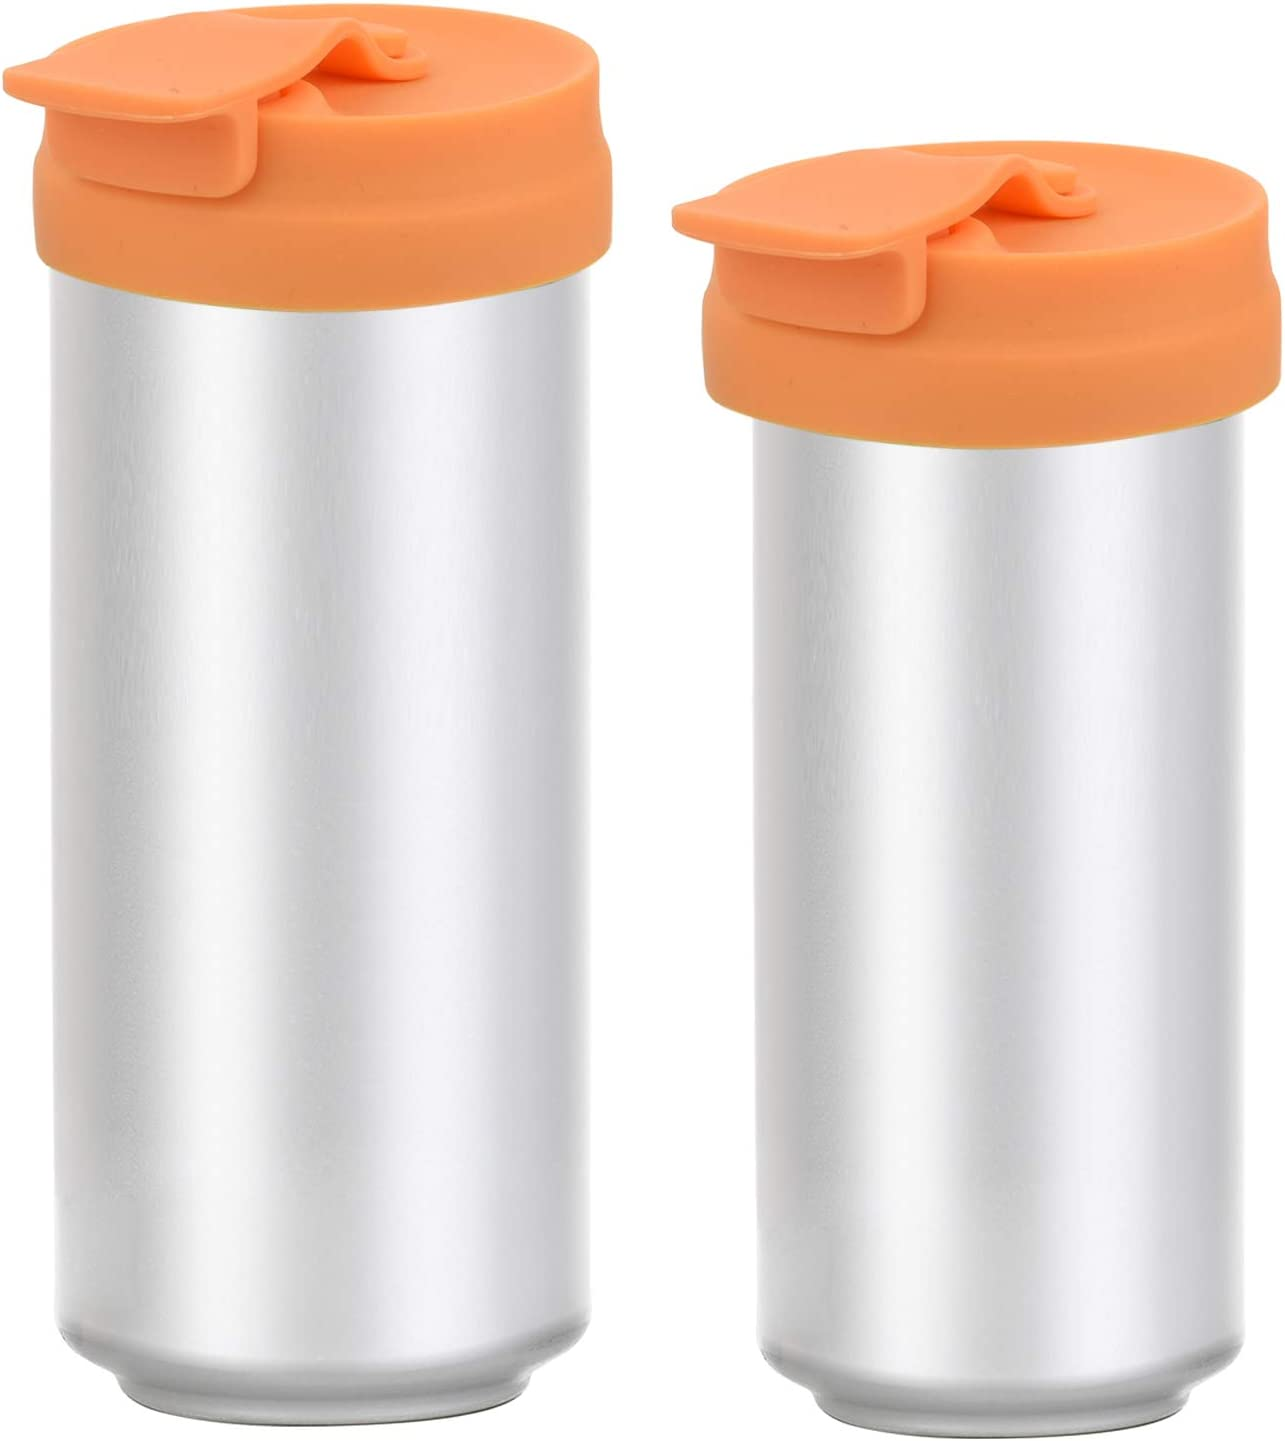 Silicone Slim Can Lids Beverage Can Cover Protector for Slim Can, Tall Skinny Can Beer Bottle, Soda, Energy Drink (2 orange)